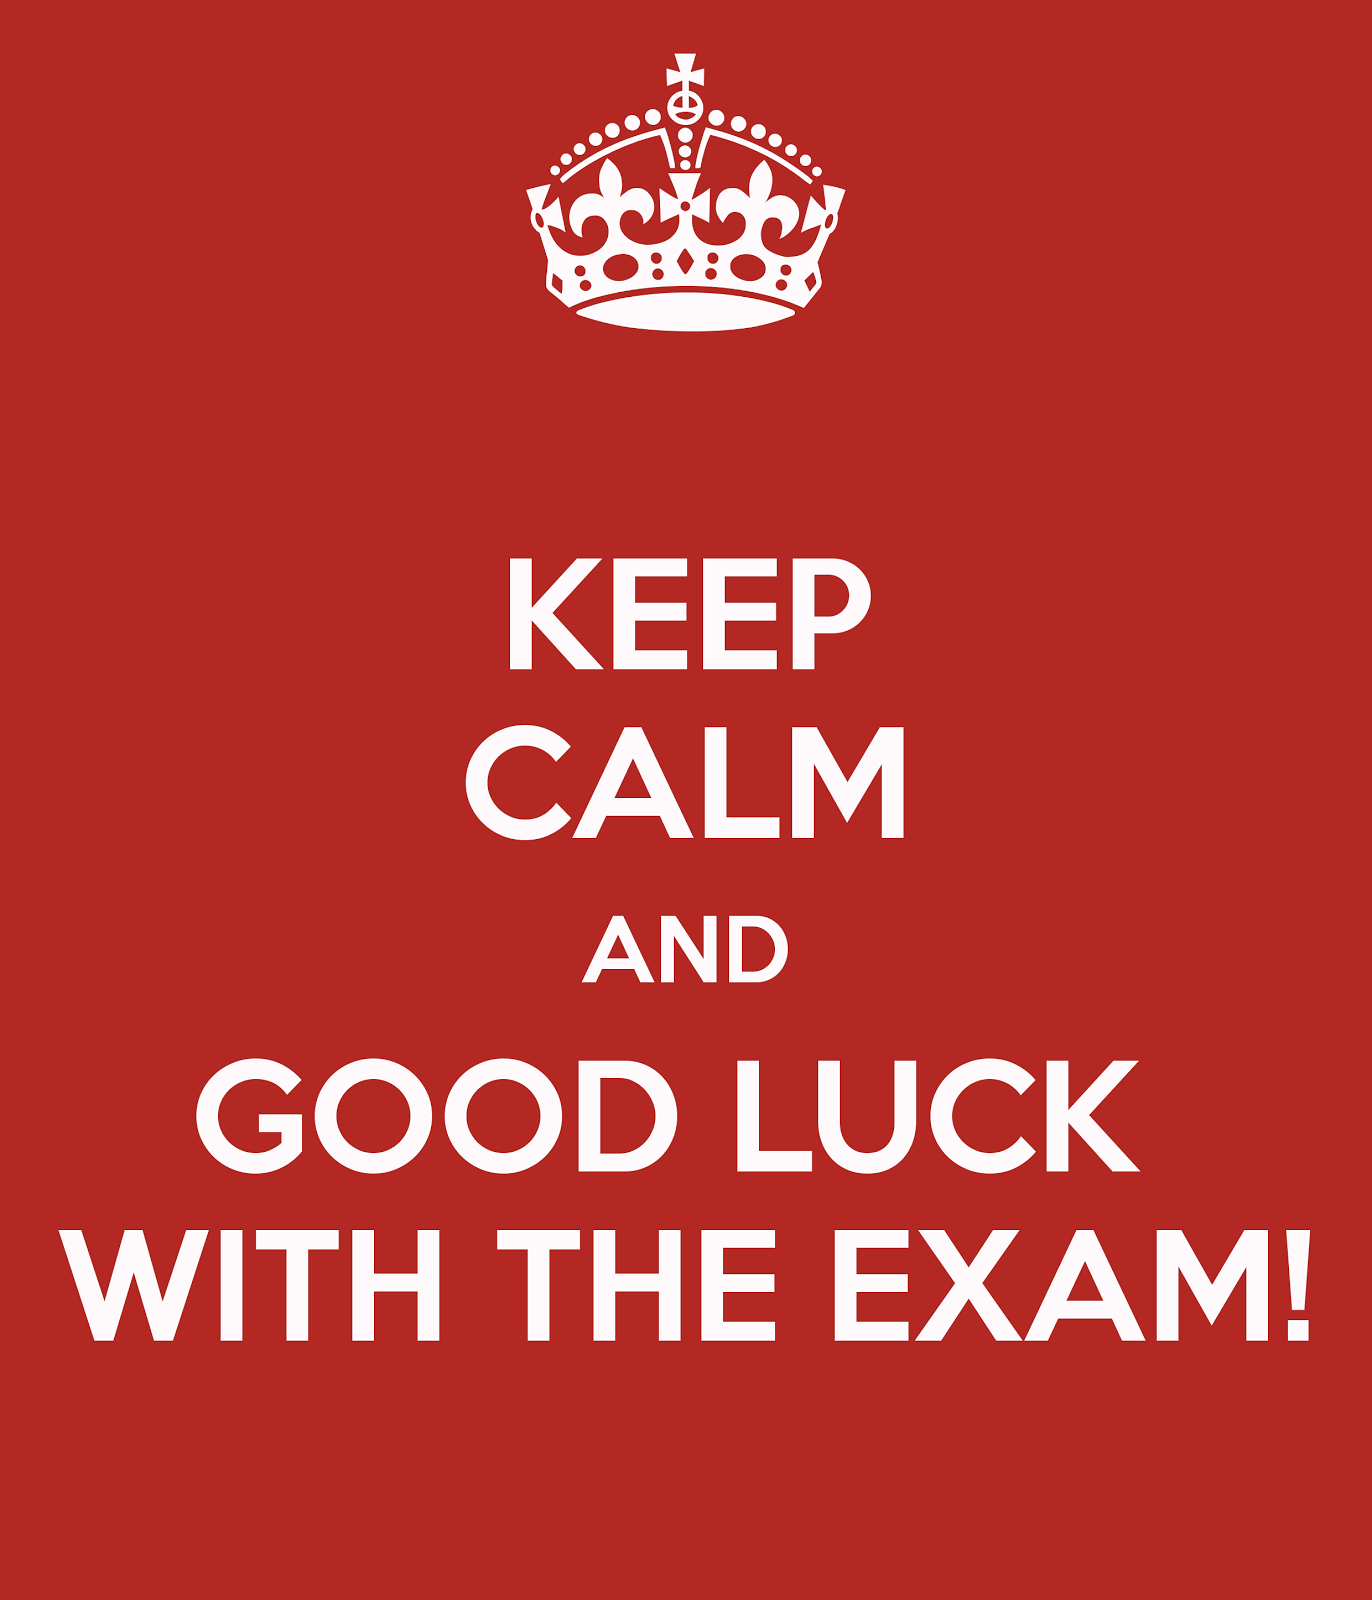 Good Luck Quotes For Board Exams: Keep Calm And Good Luck